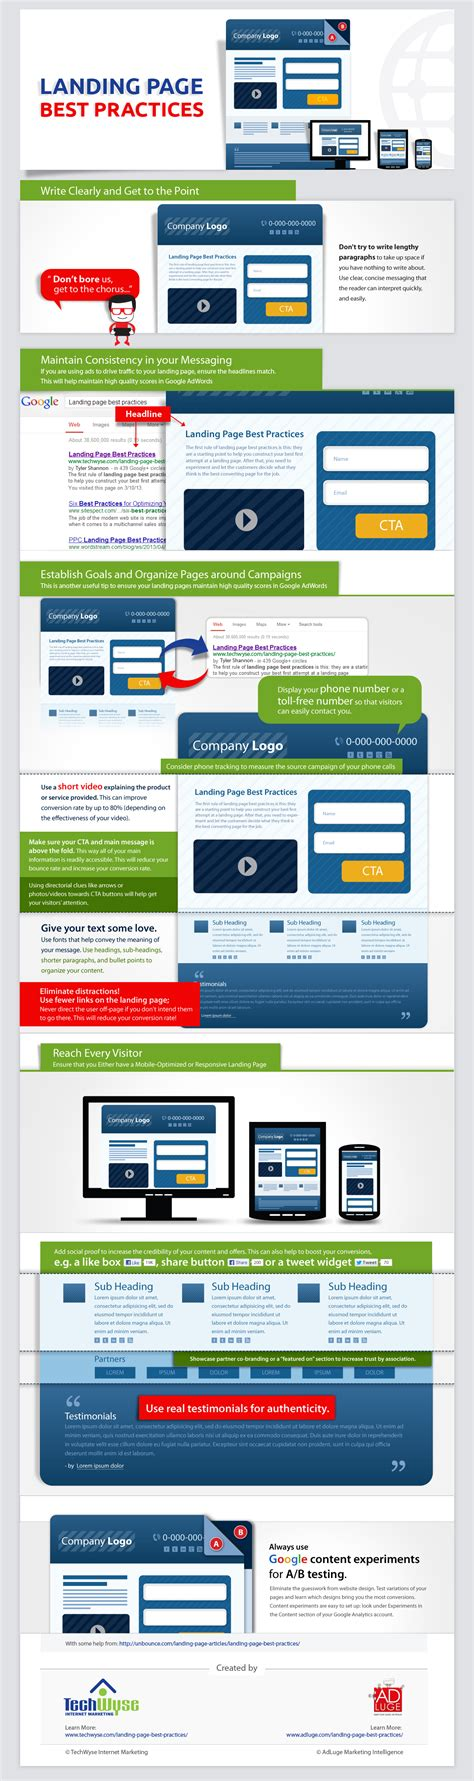 landing page best practice landing page best practices how to design the